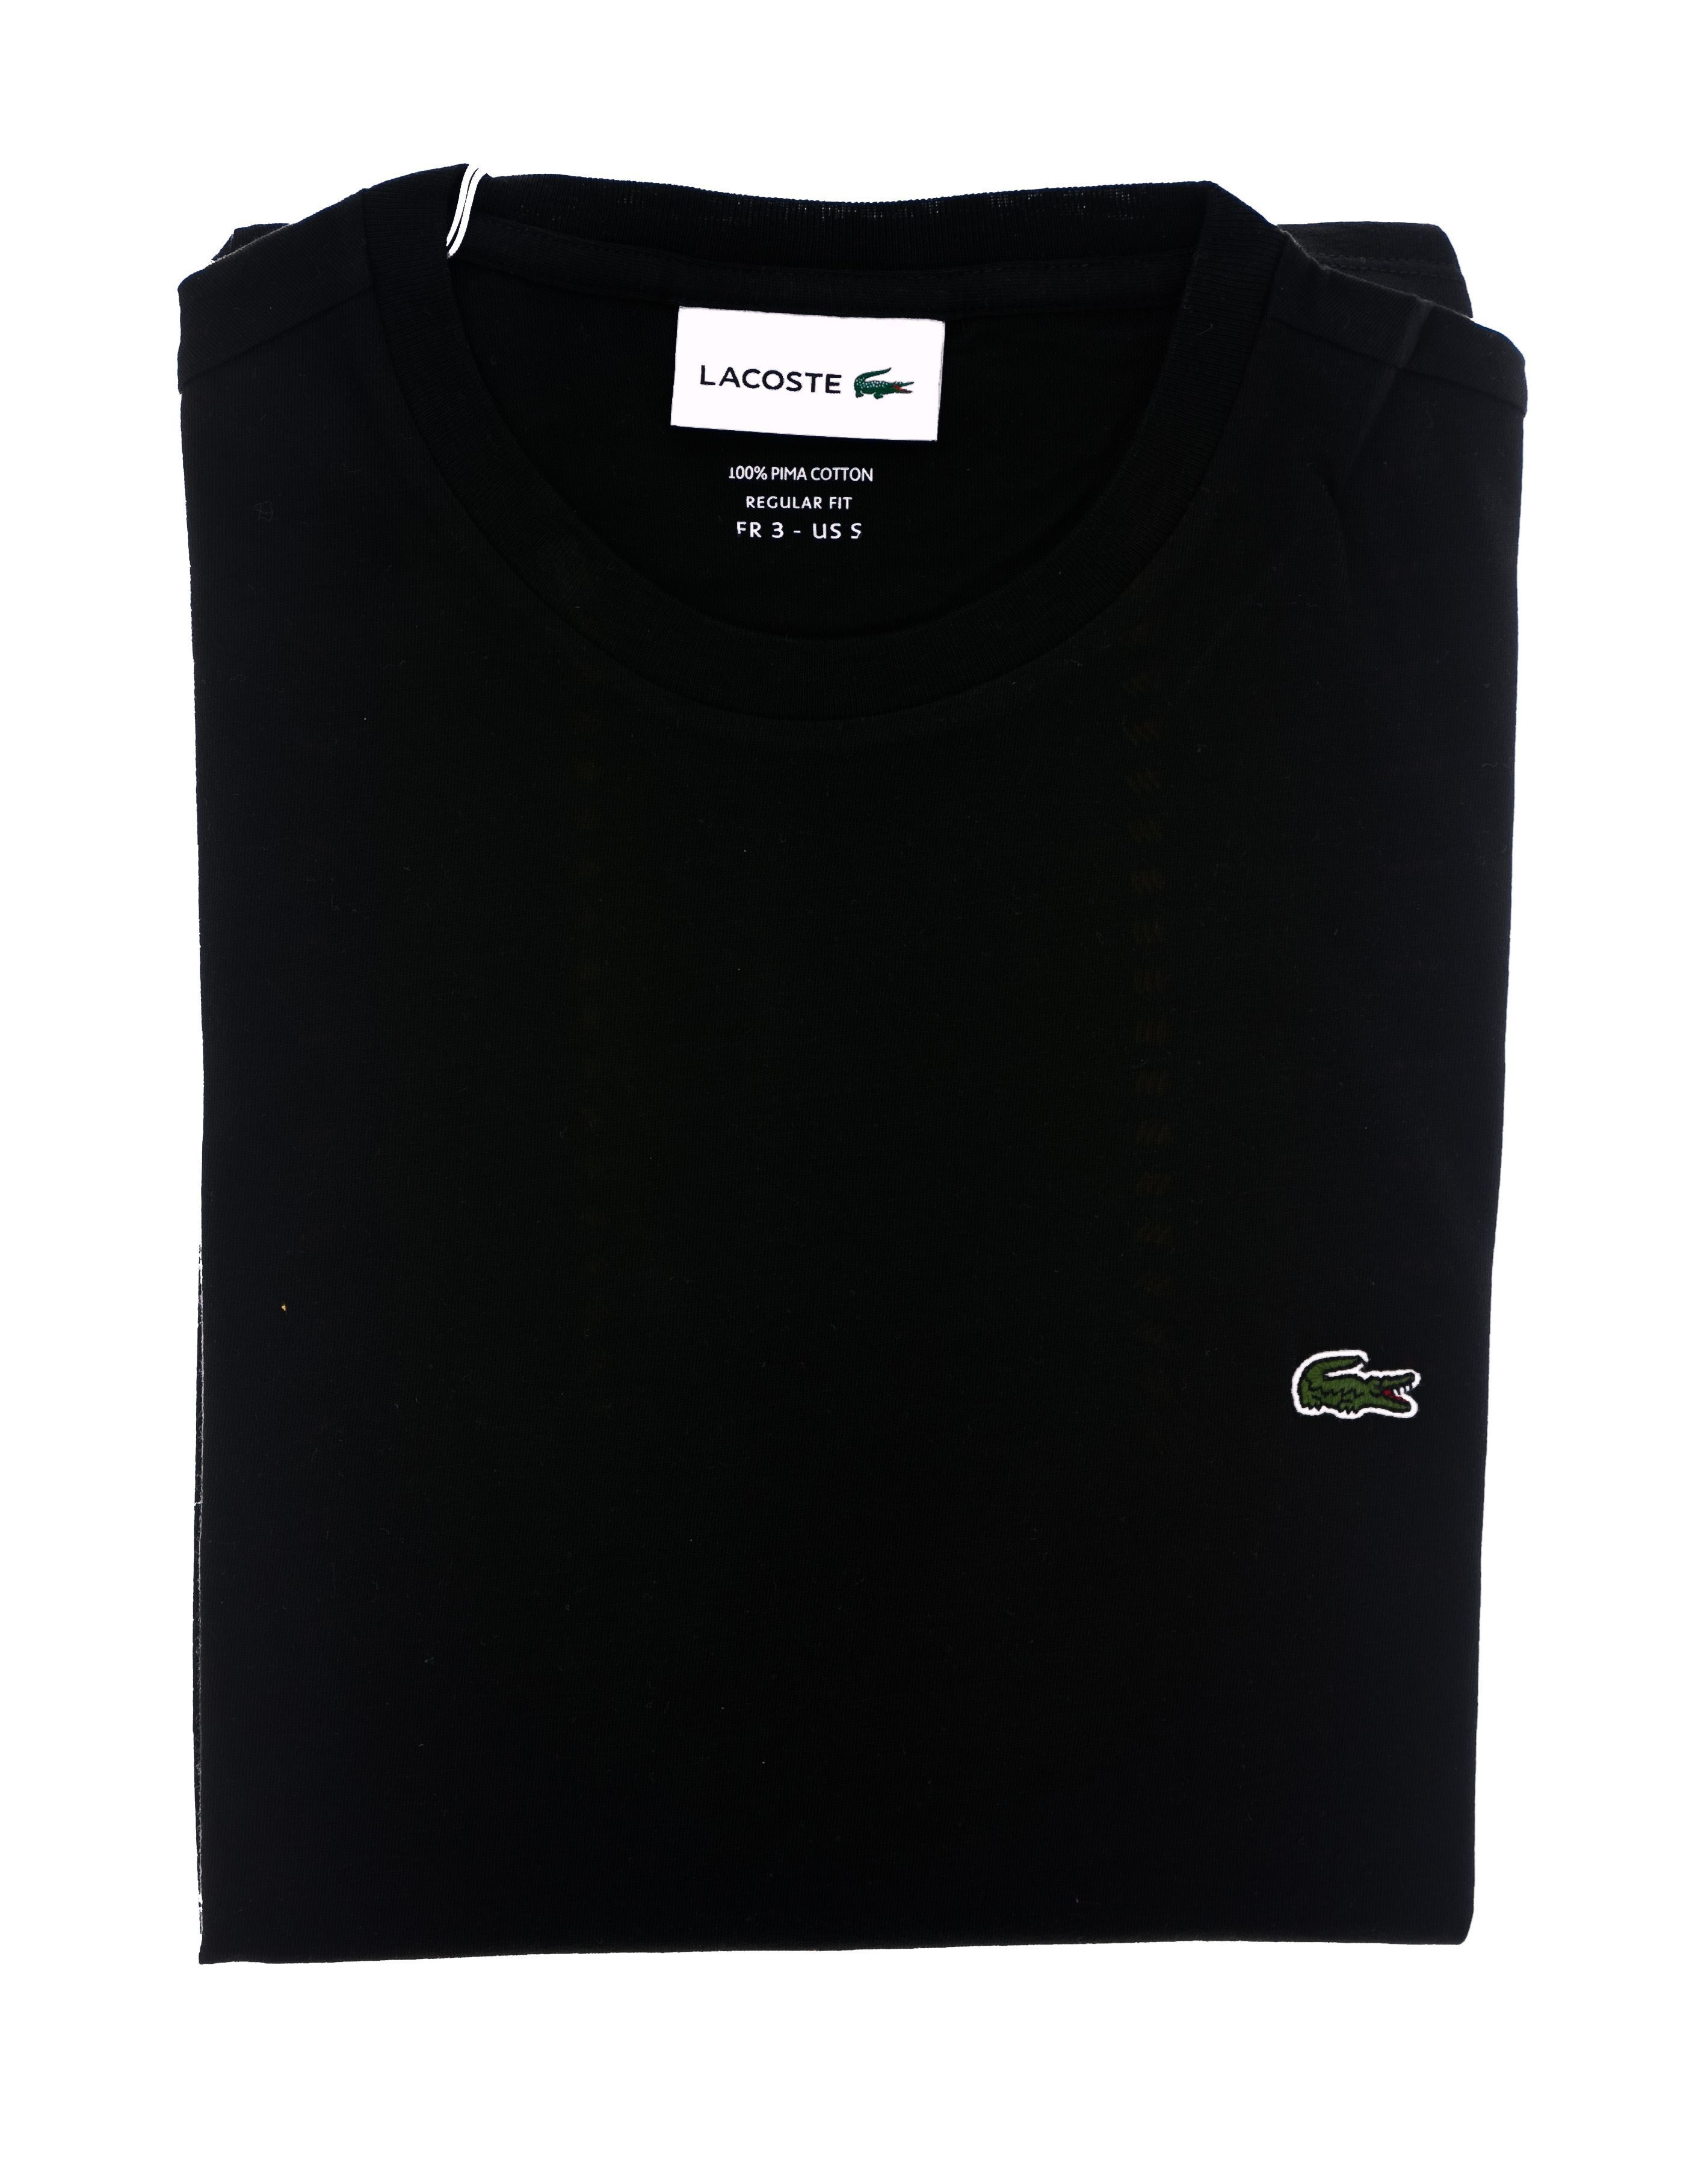 Picture of Black Jersey cotton t-shirt